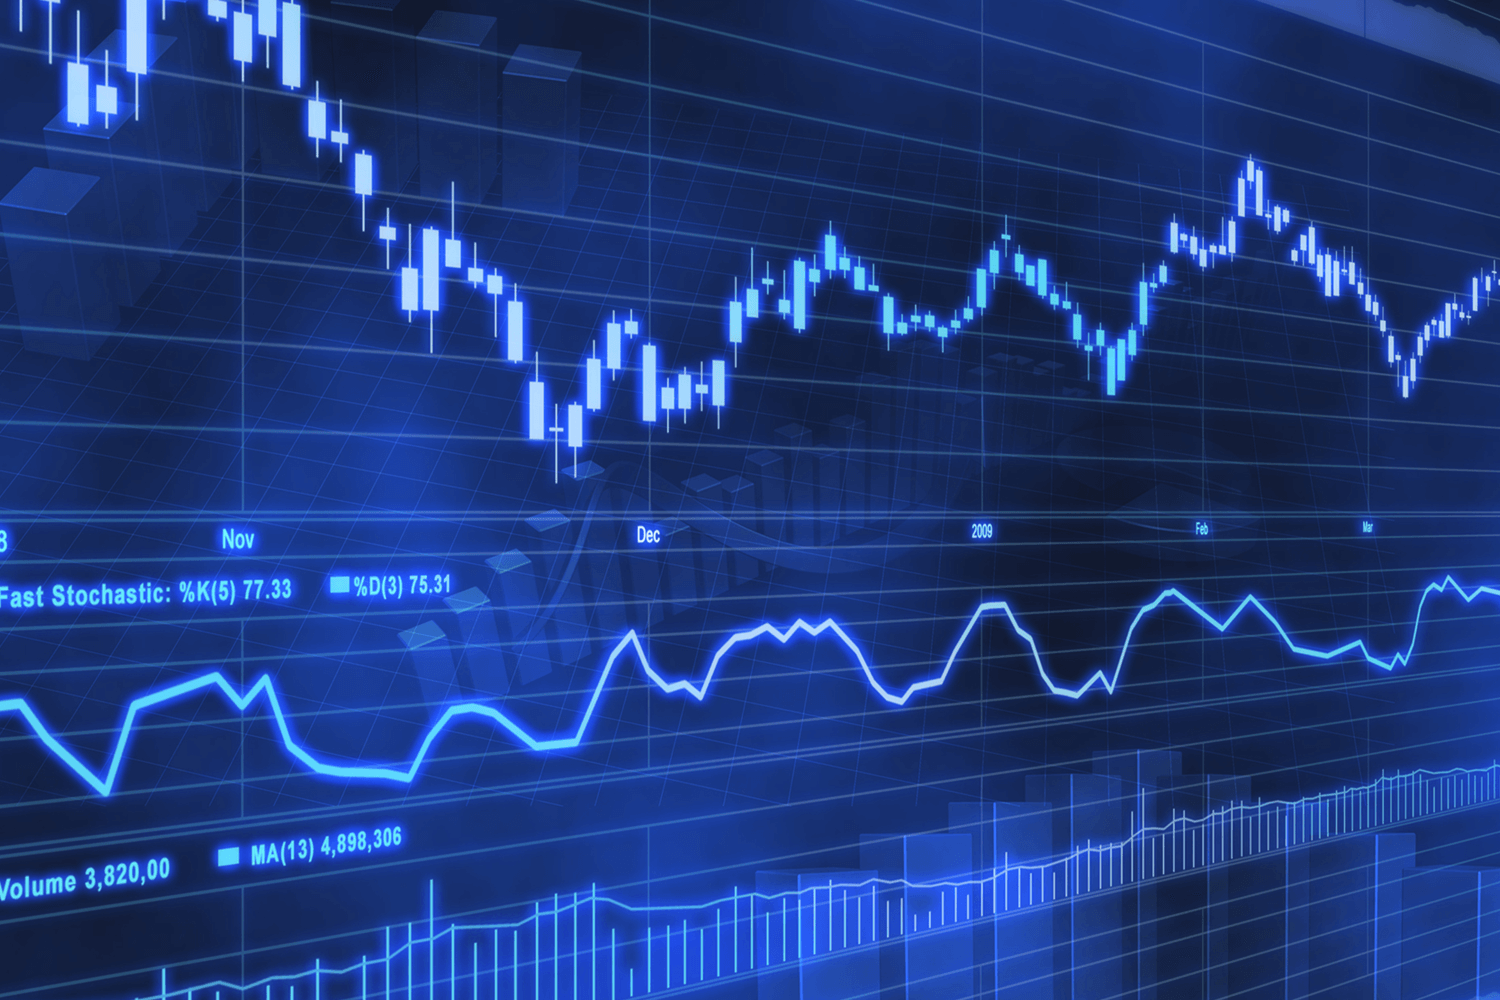 Ensure The Current Stock Price With Help Of The Inpx Stock